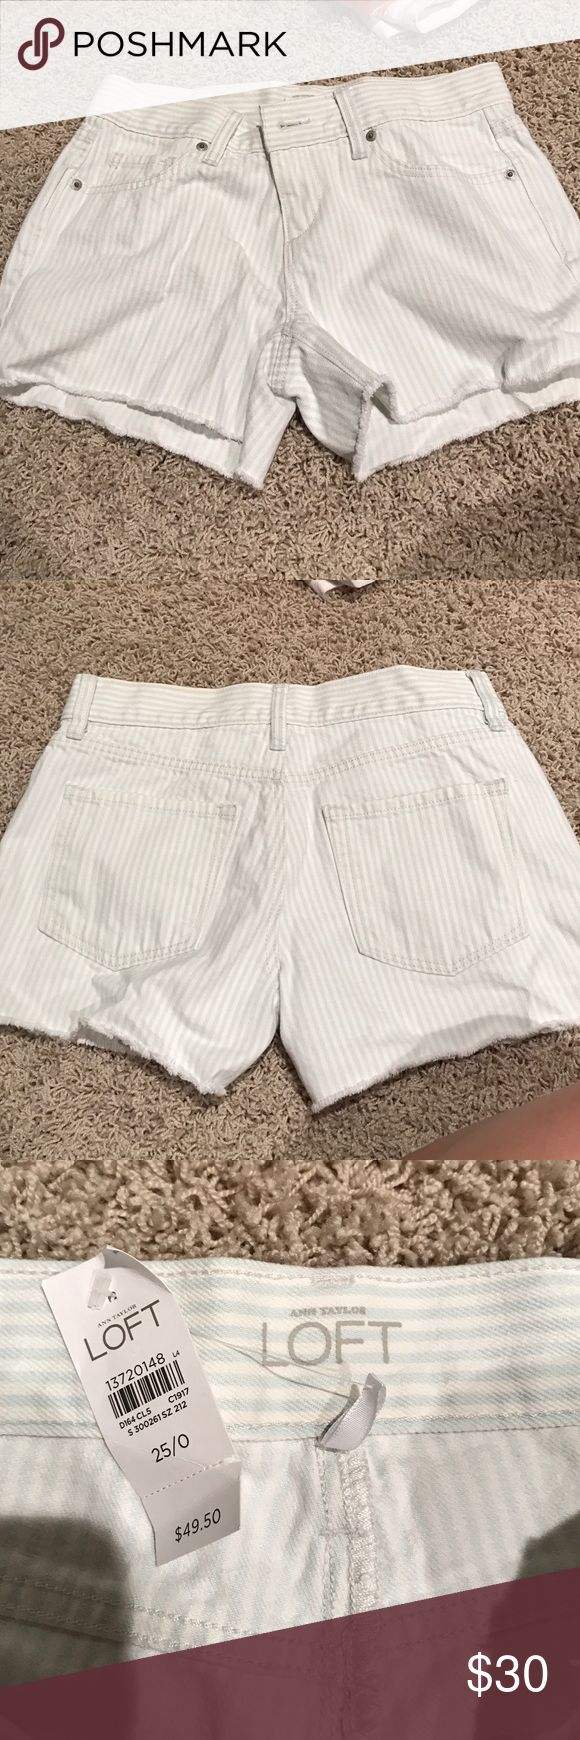 Anne Taylor loft shorts Light blue and white stripped shorts- never worn (new with tags)- fringed bottom, very cute! LOFT Shorts